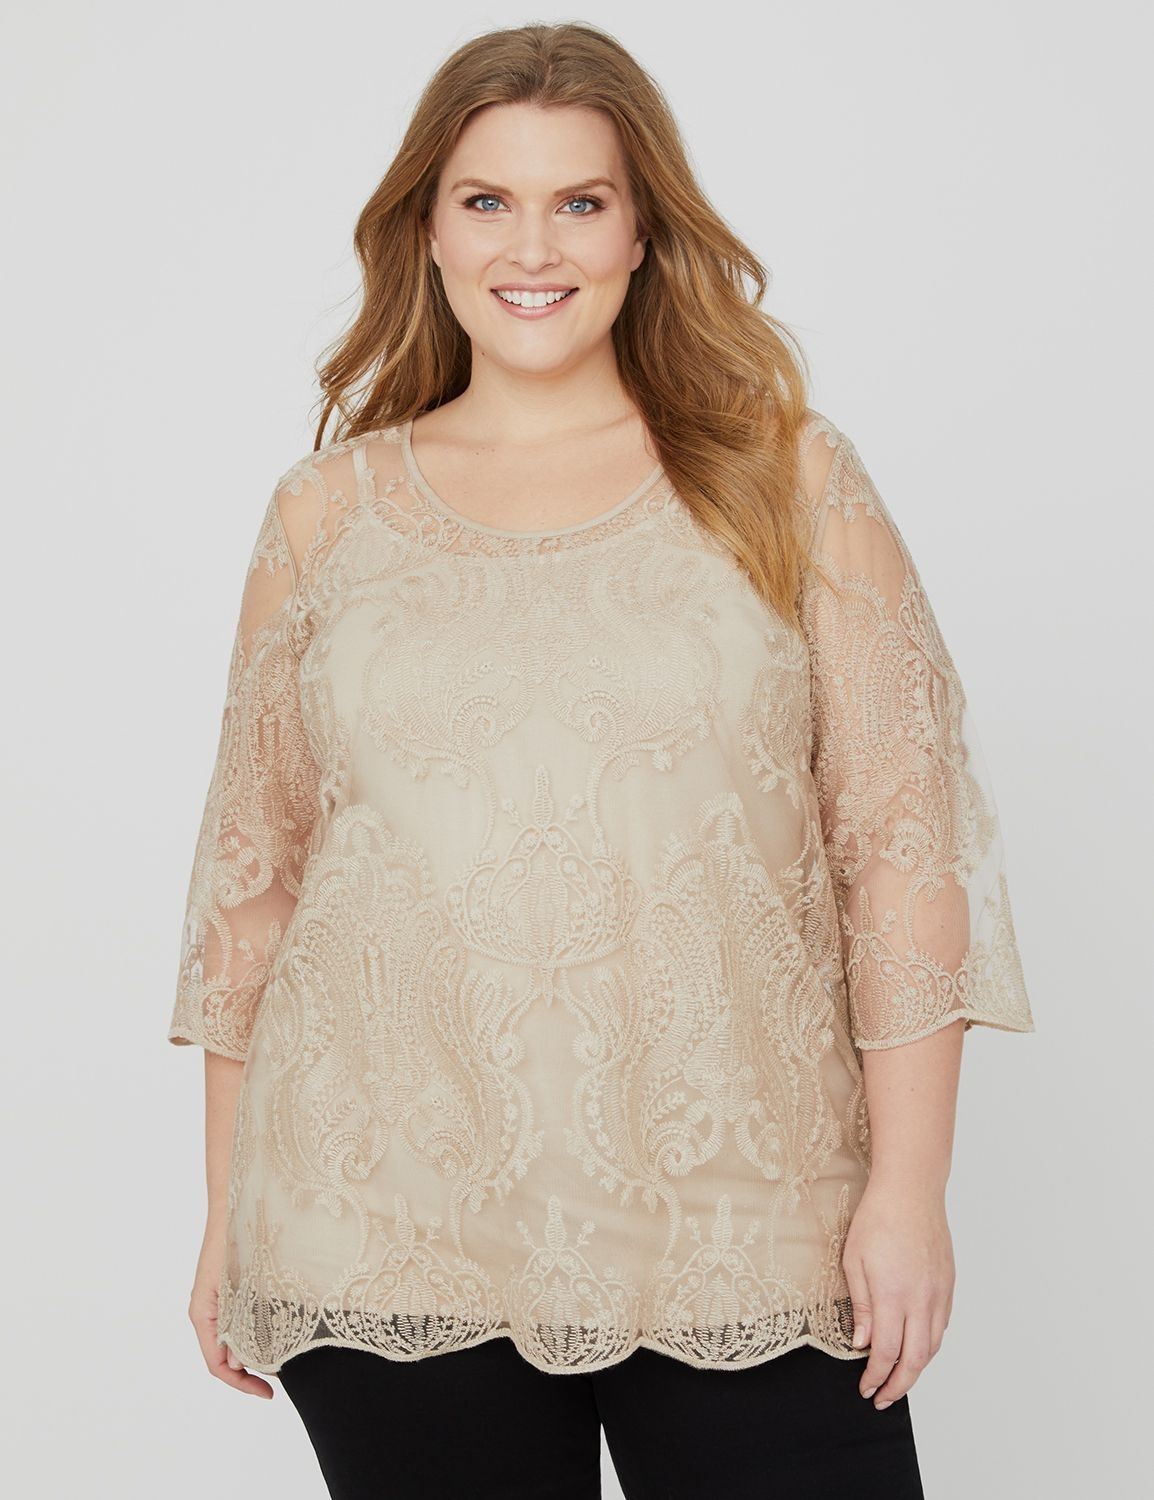 Soft Afterglow Top 1091394 Nuance Mesh Embroidered Tun MP-300103675